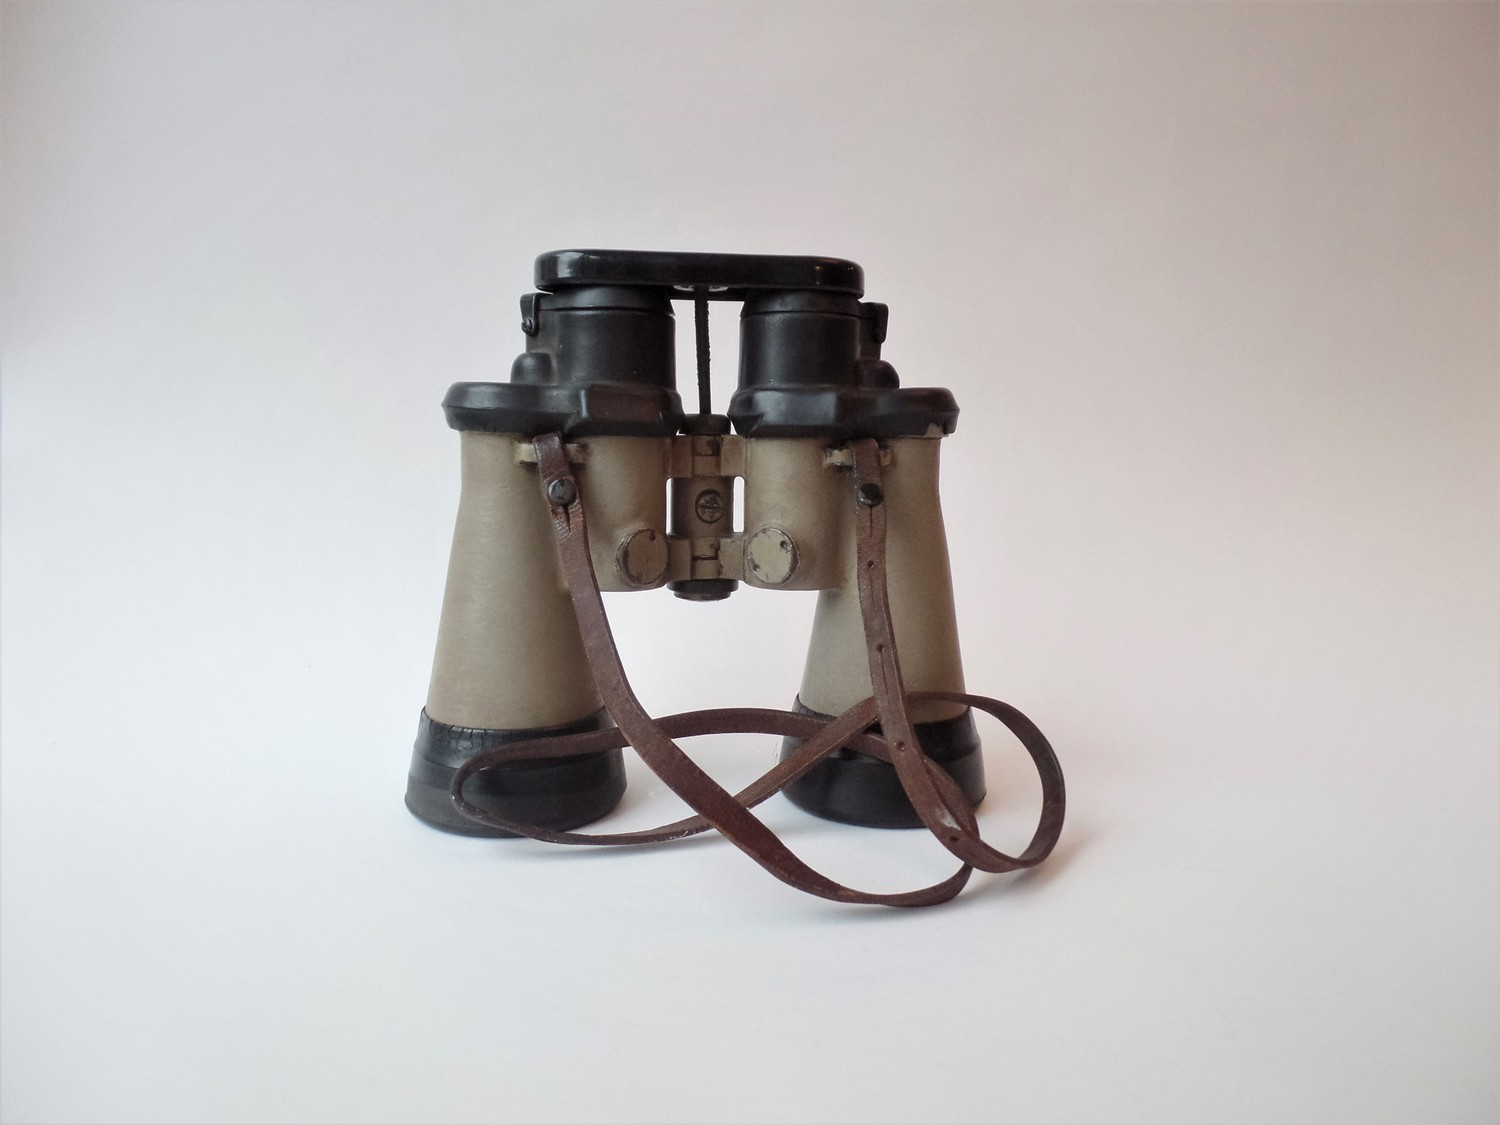 U-BOAT BINOCULARS - CARL ZEISS 7X50 BLC 1943 - 1944 - CLEANED AND SERVICED